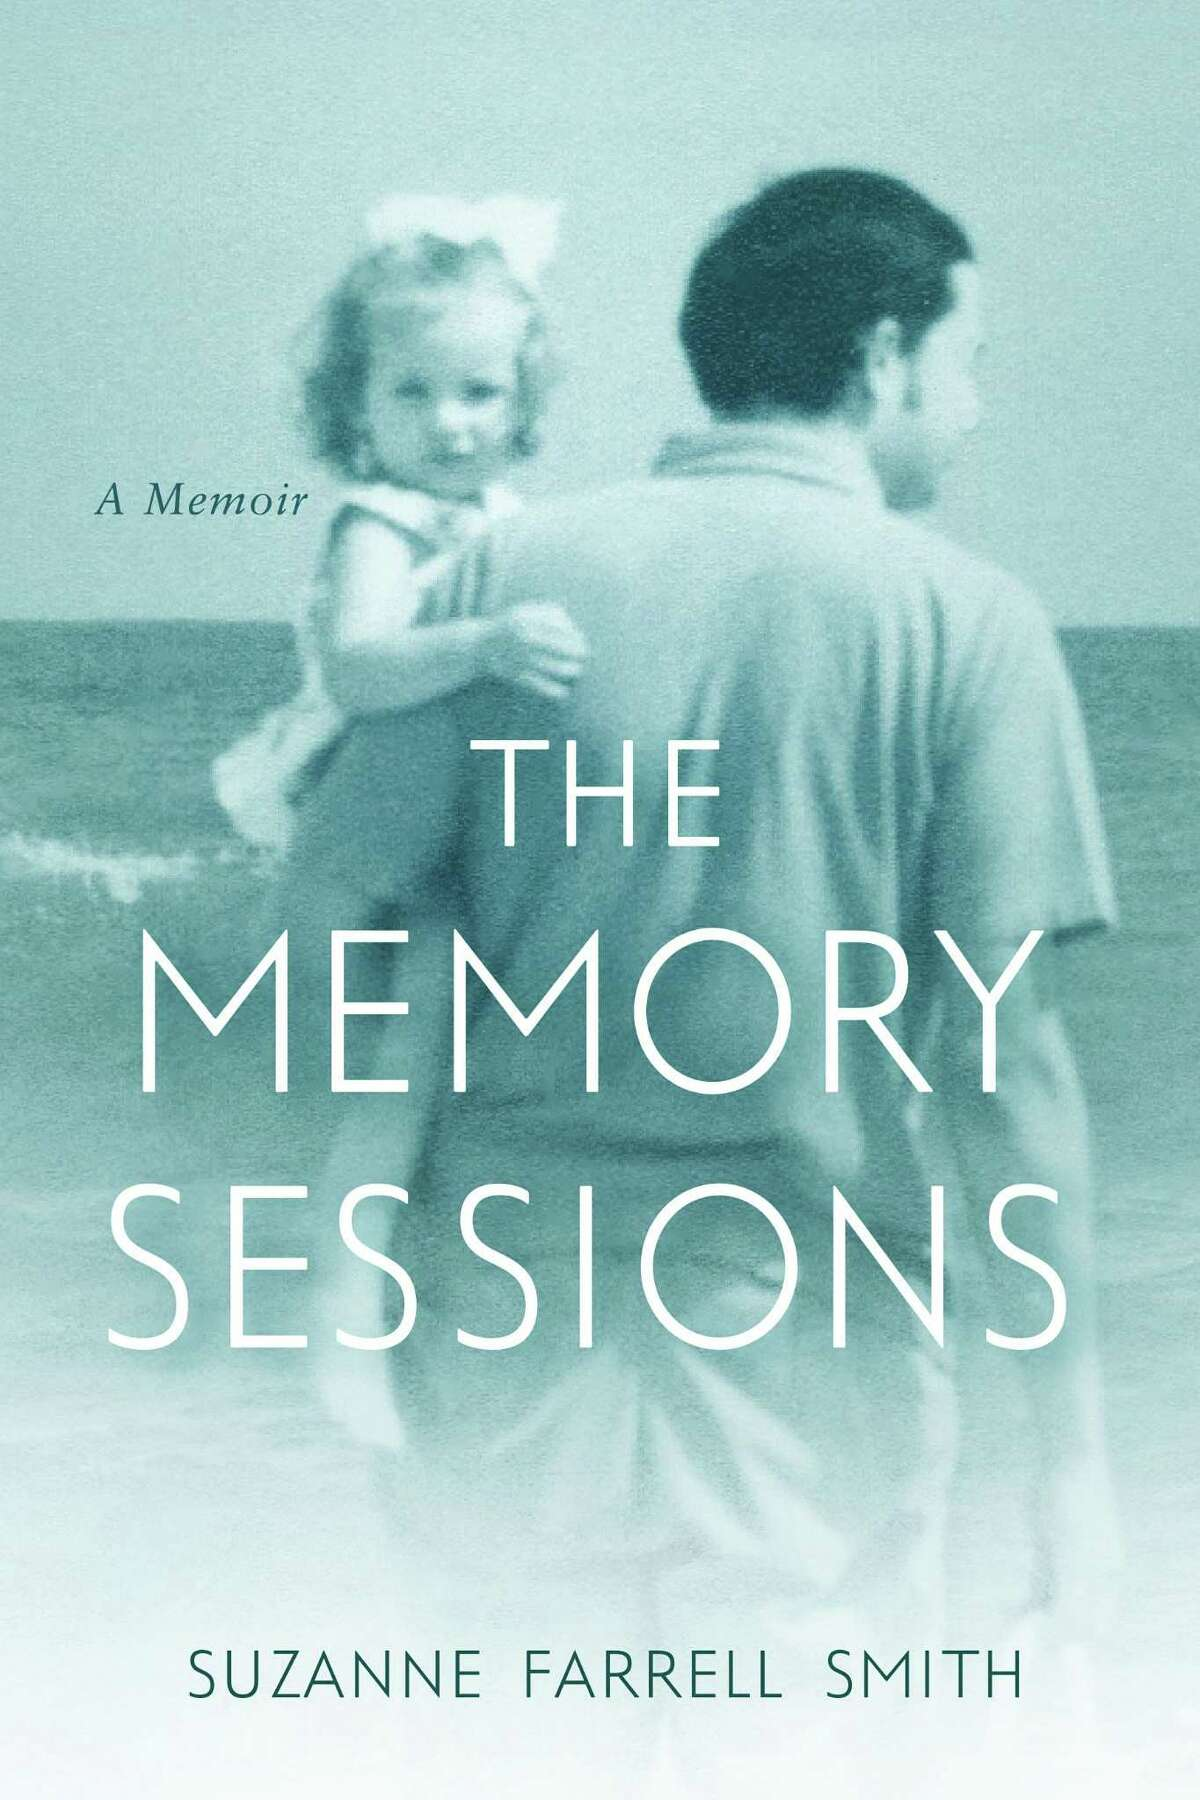 'The Memory Sessions' by Suzanne Farrell Smith of Wilton